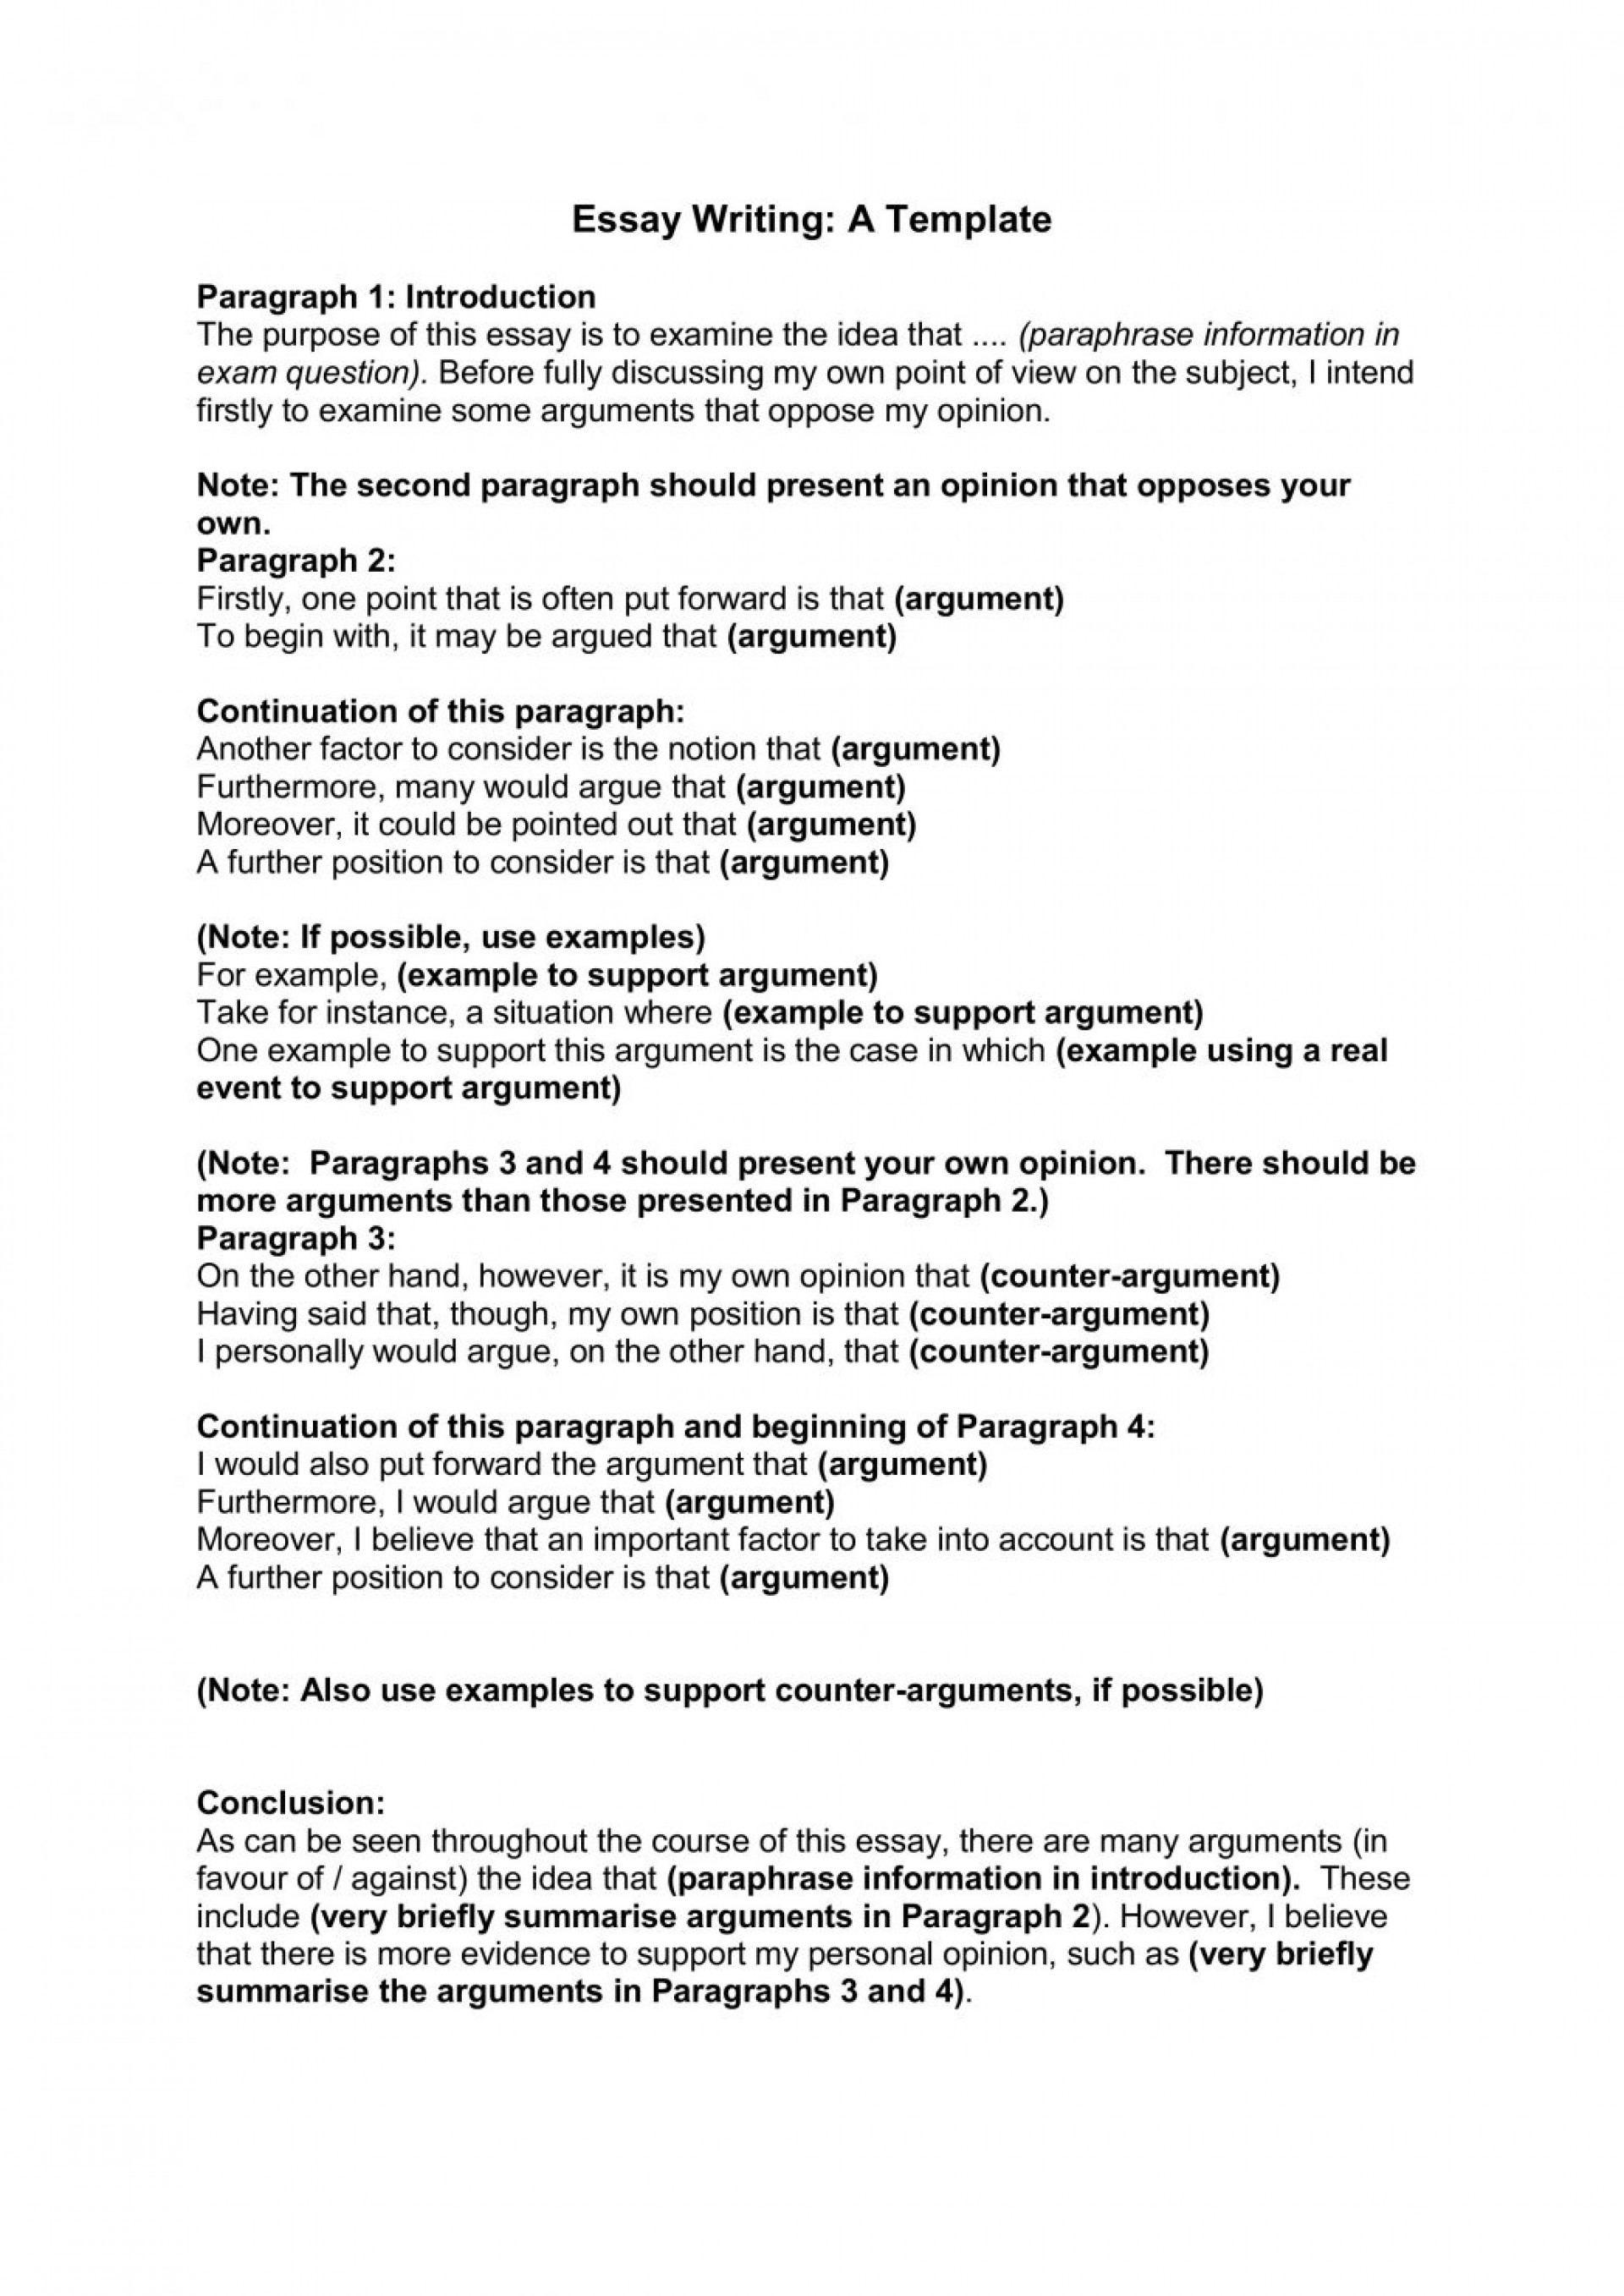 010 Essay Example Start How To Creative Writing Ways College With Quote Template For P Hook About Yourself Prompt Scholarship Application Your Background Examples Failure Wonderful An A Argumentative Write Format Mla 1920